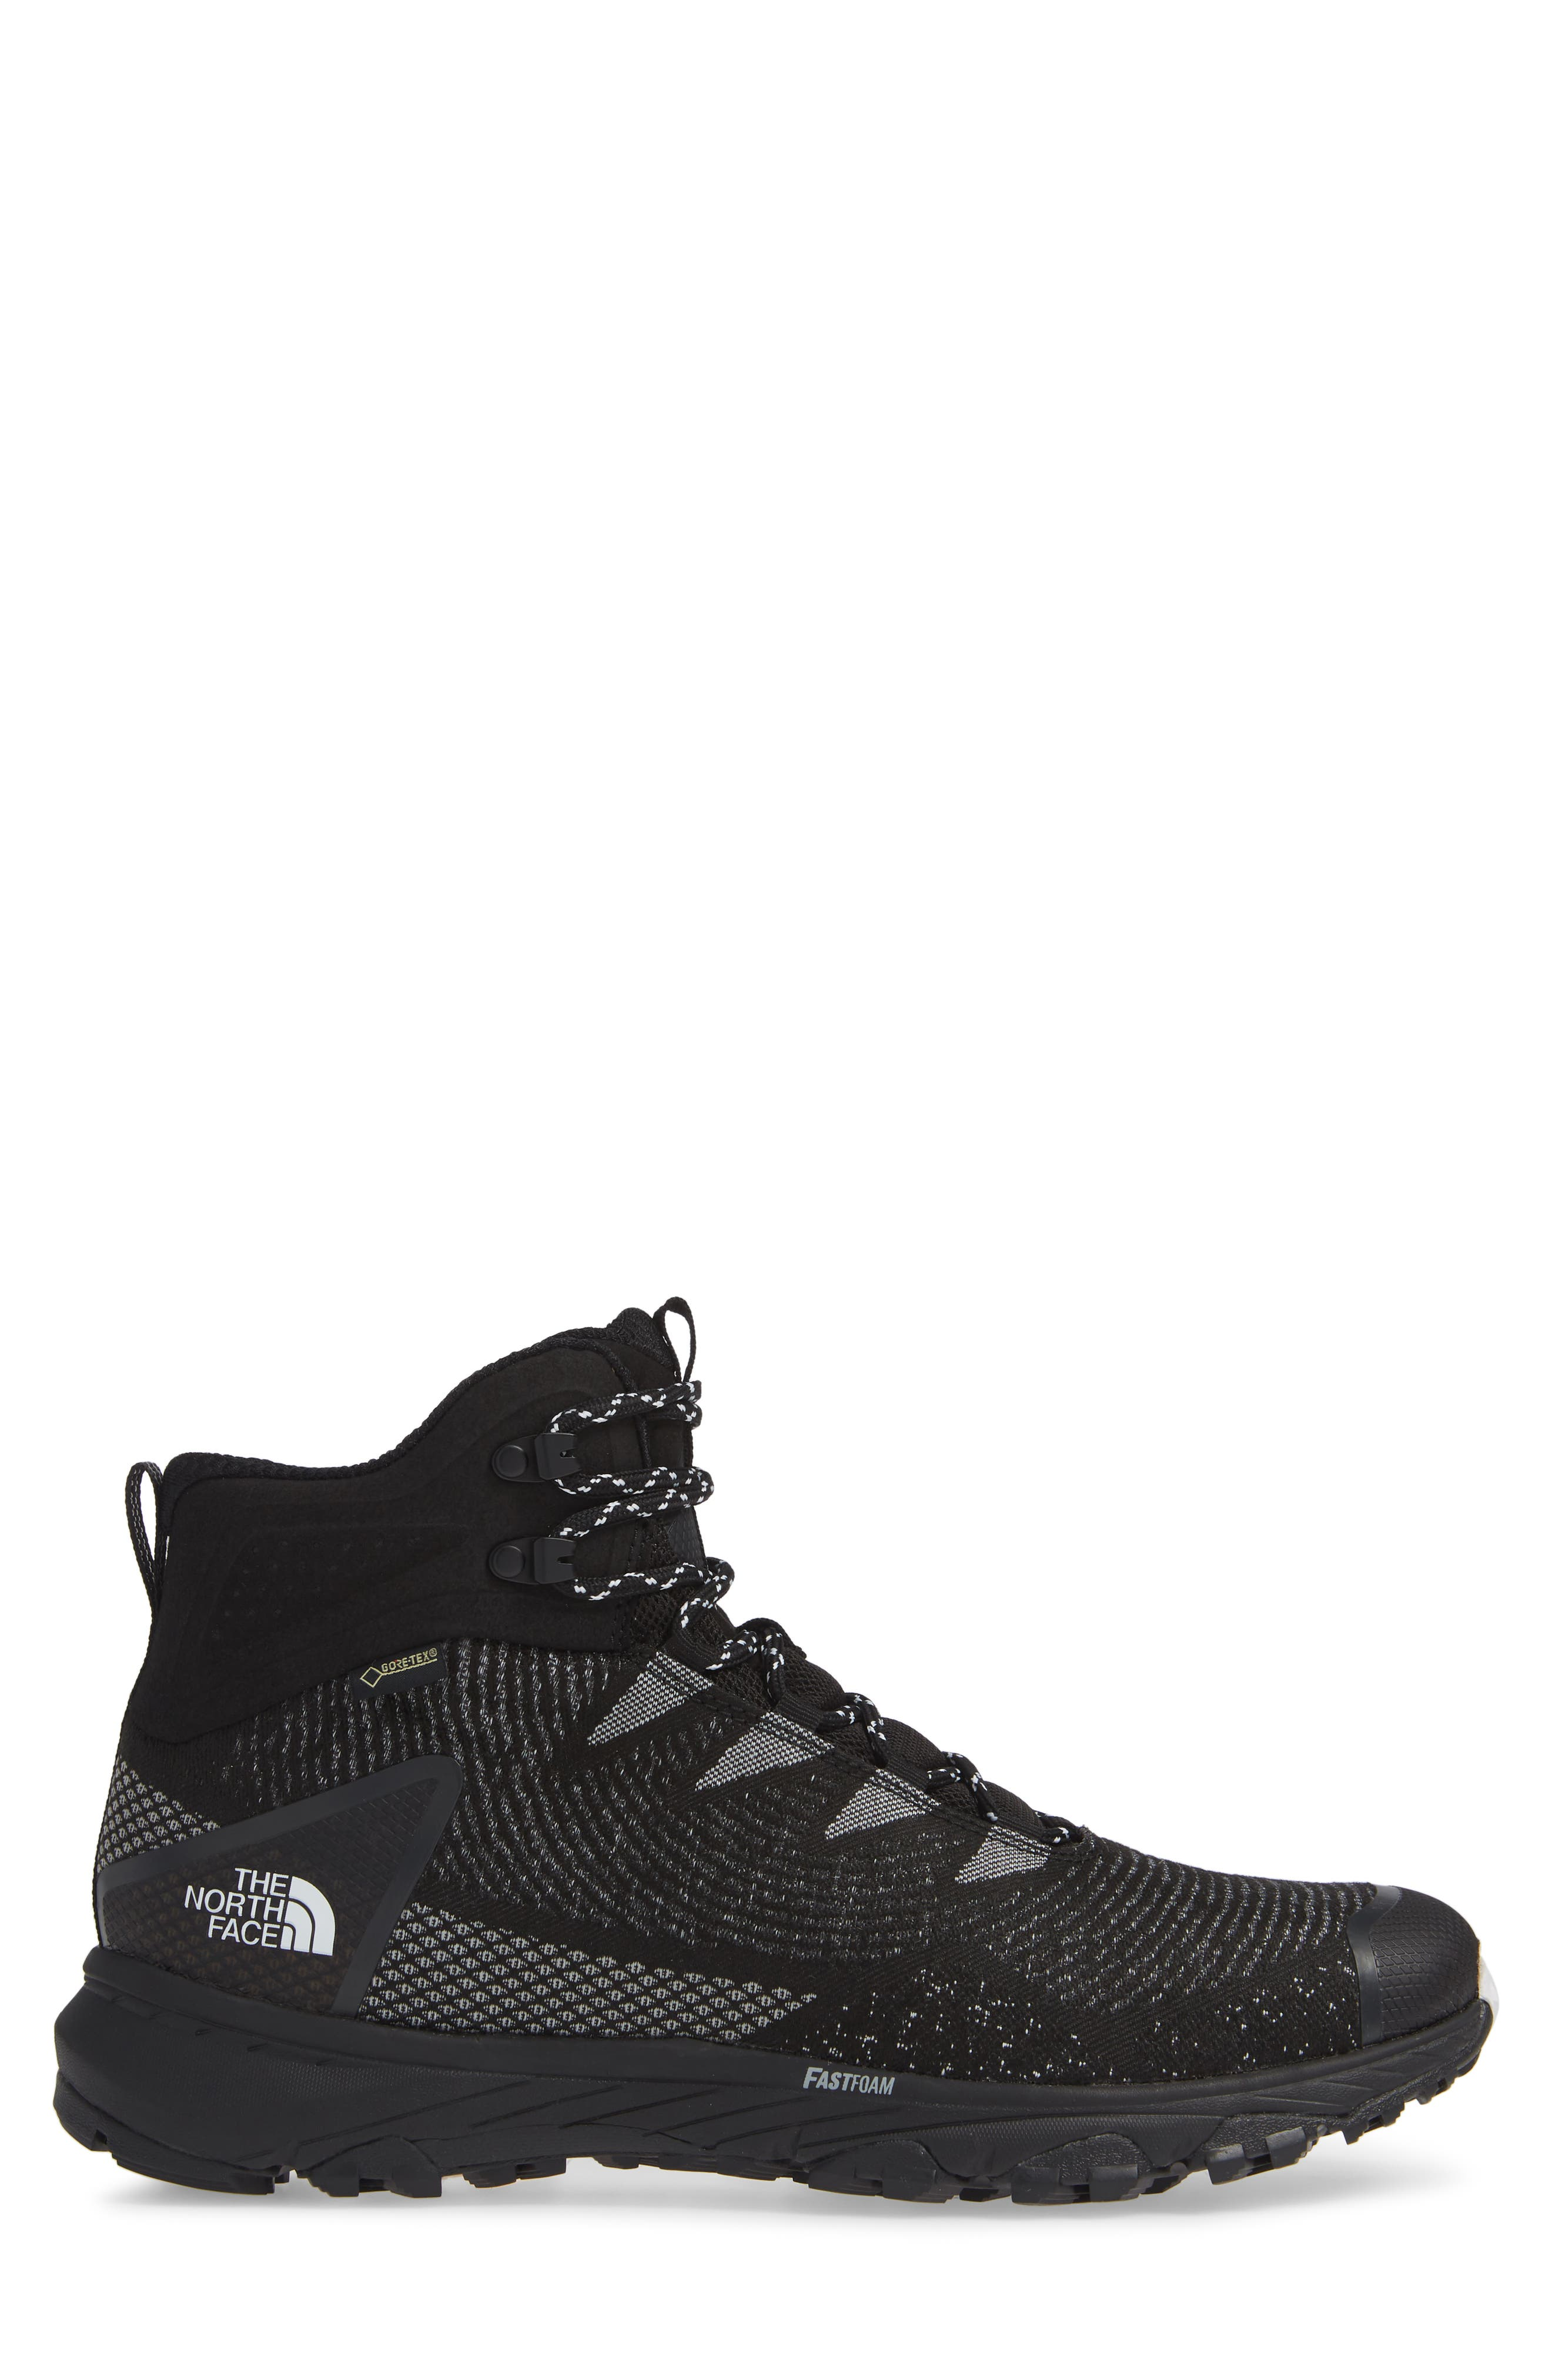 Ultra Fastpack III Mid Gore-Tex<sup>®</sup> Hiking Boot,                             Alternate thumbnail 3, color,                             BLACK/ WHITE